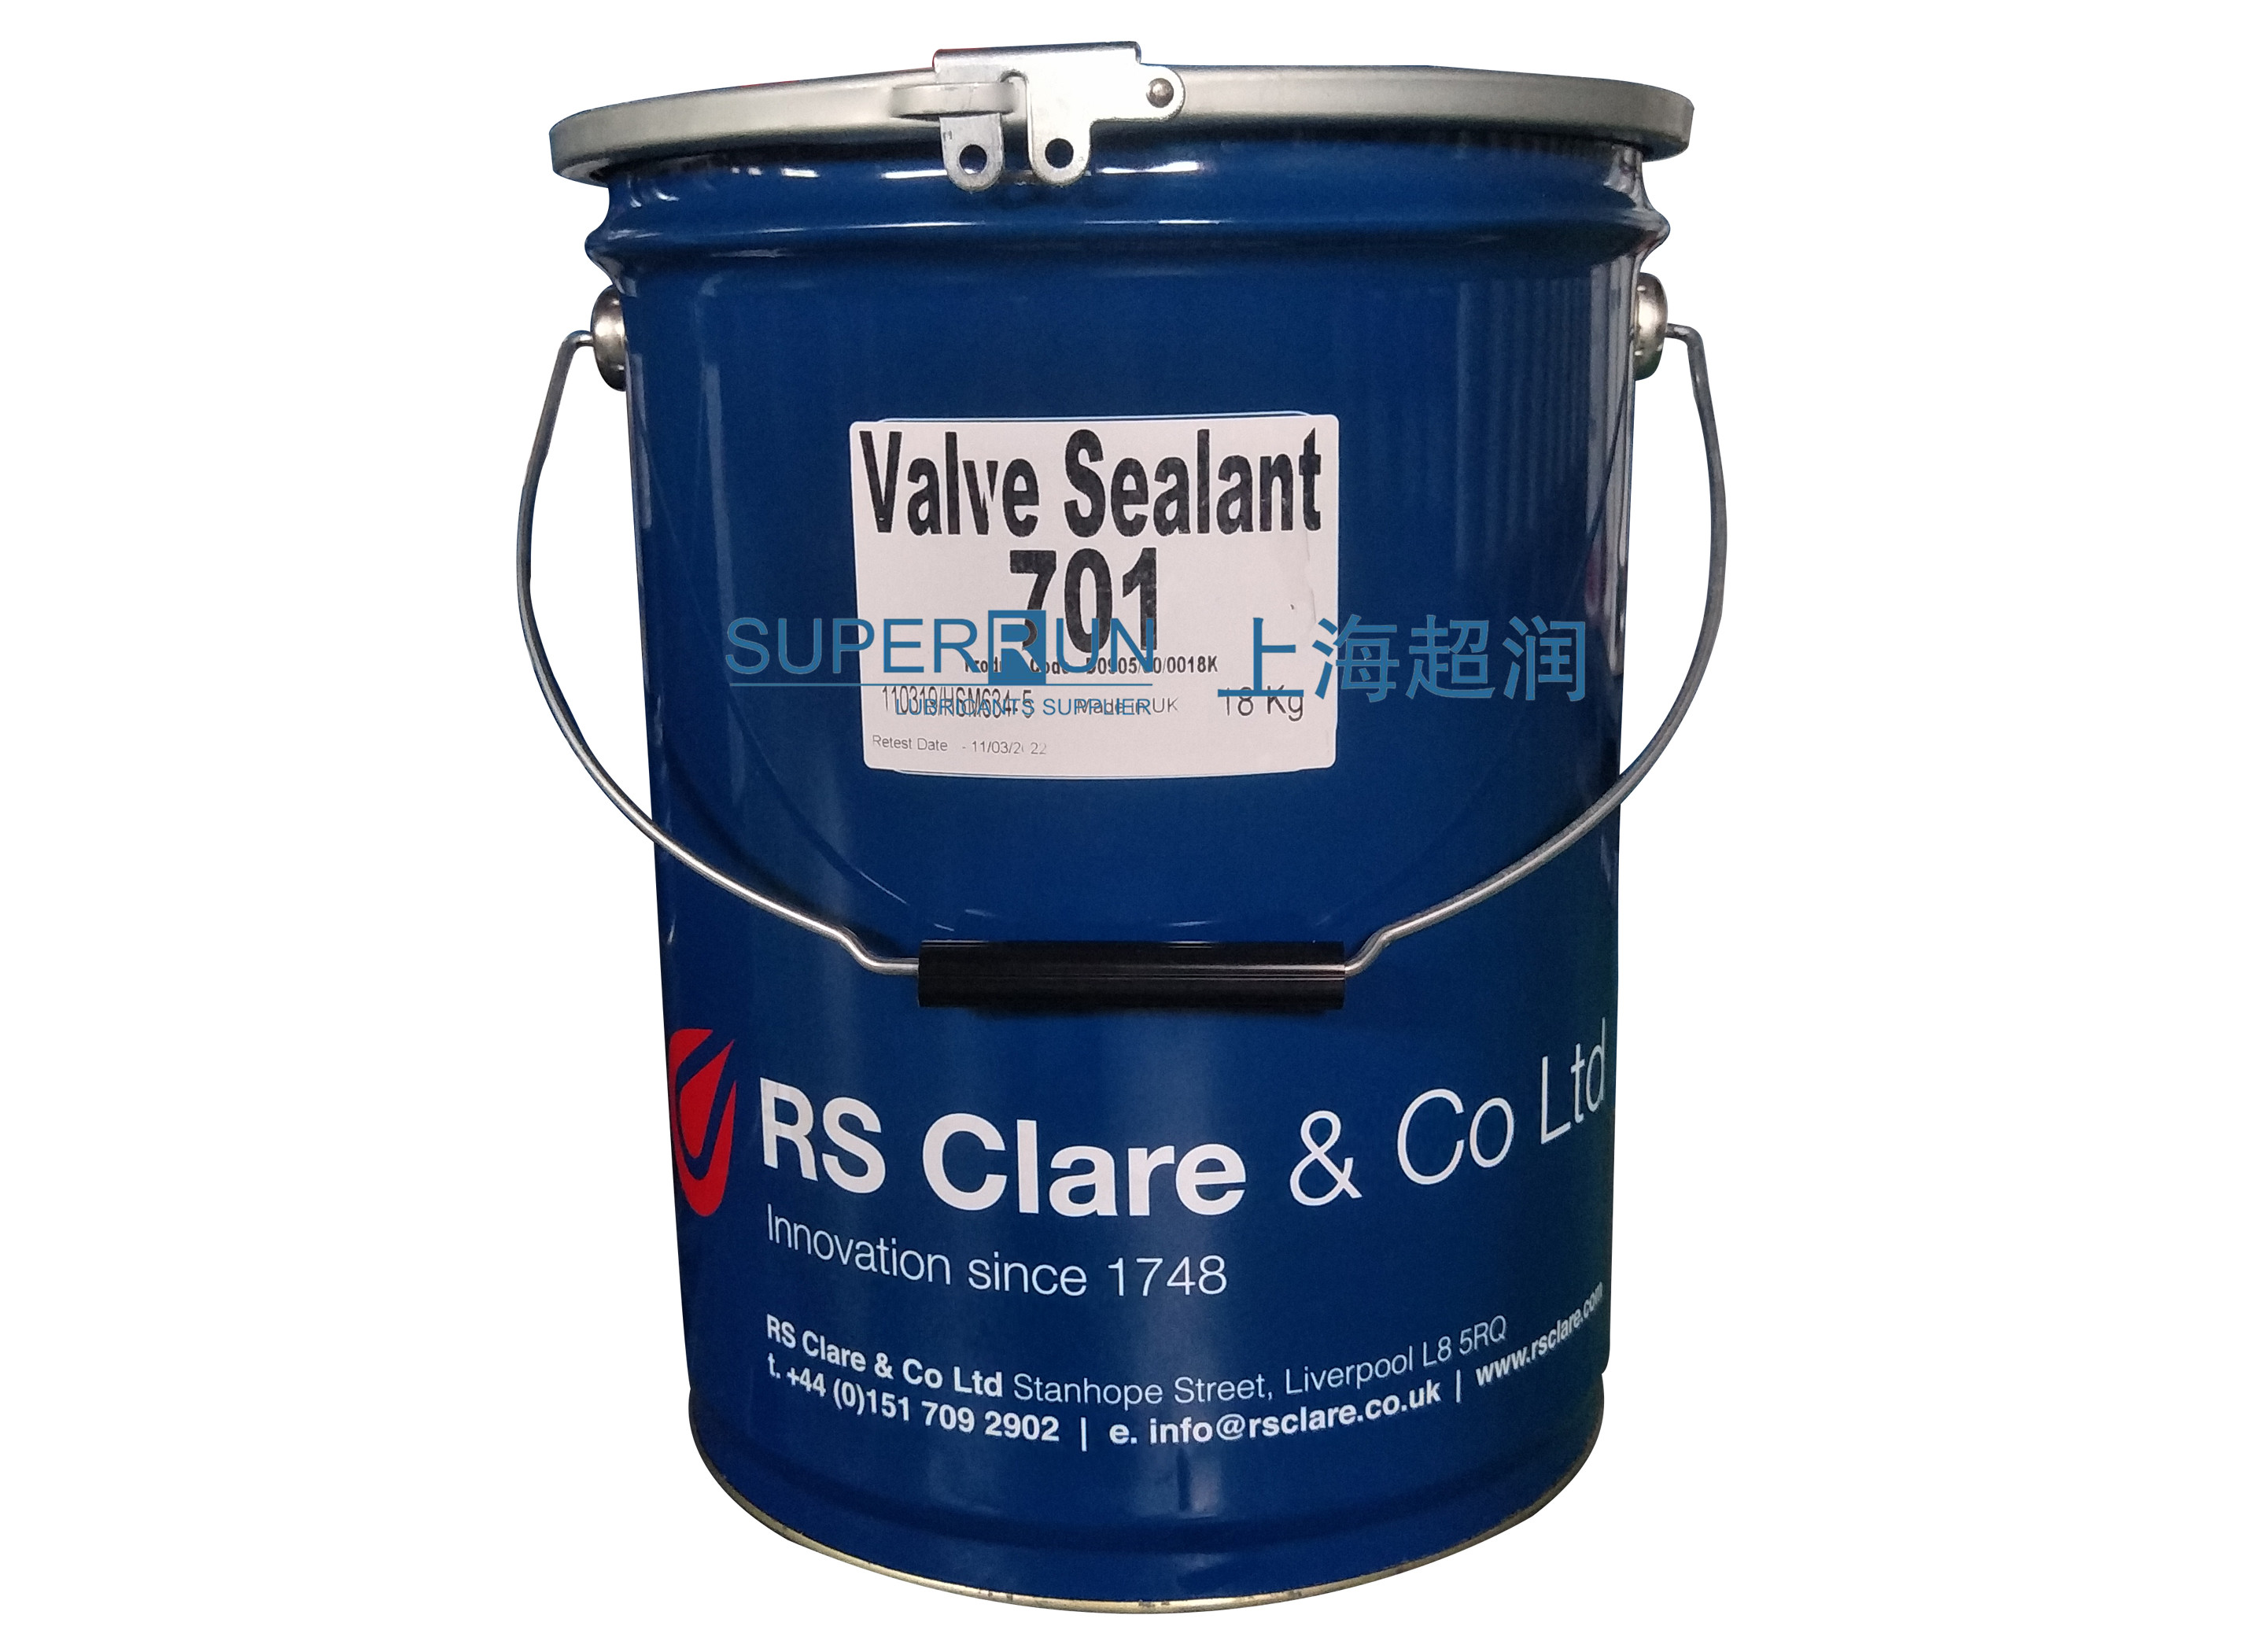 RS CLARE VALVE SEALANT 701